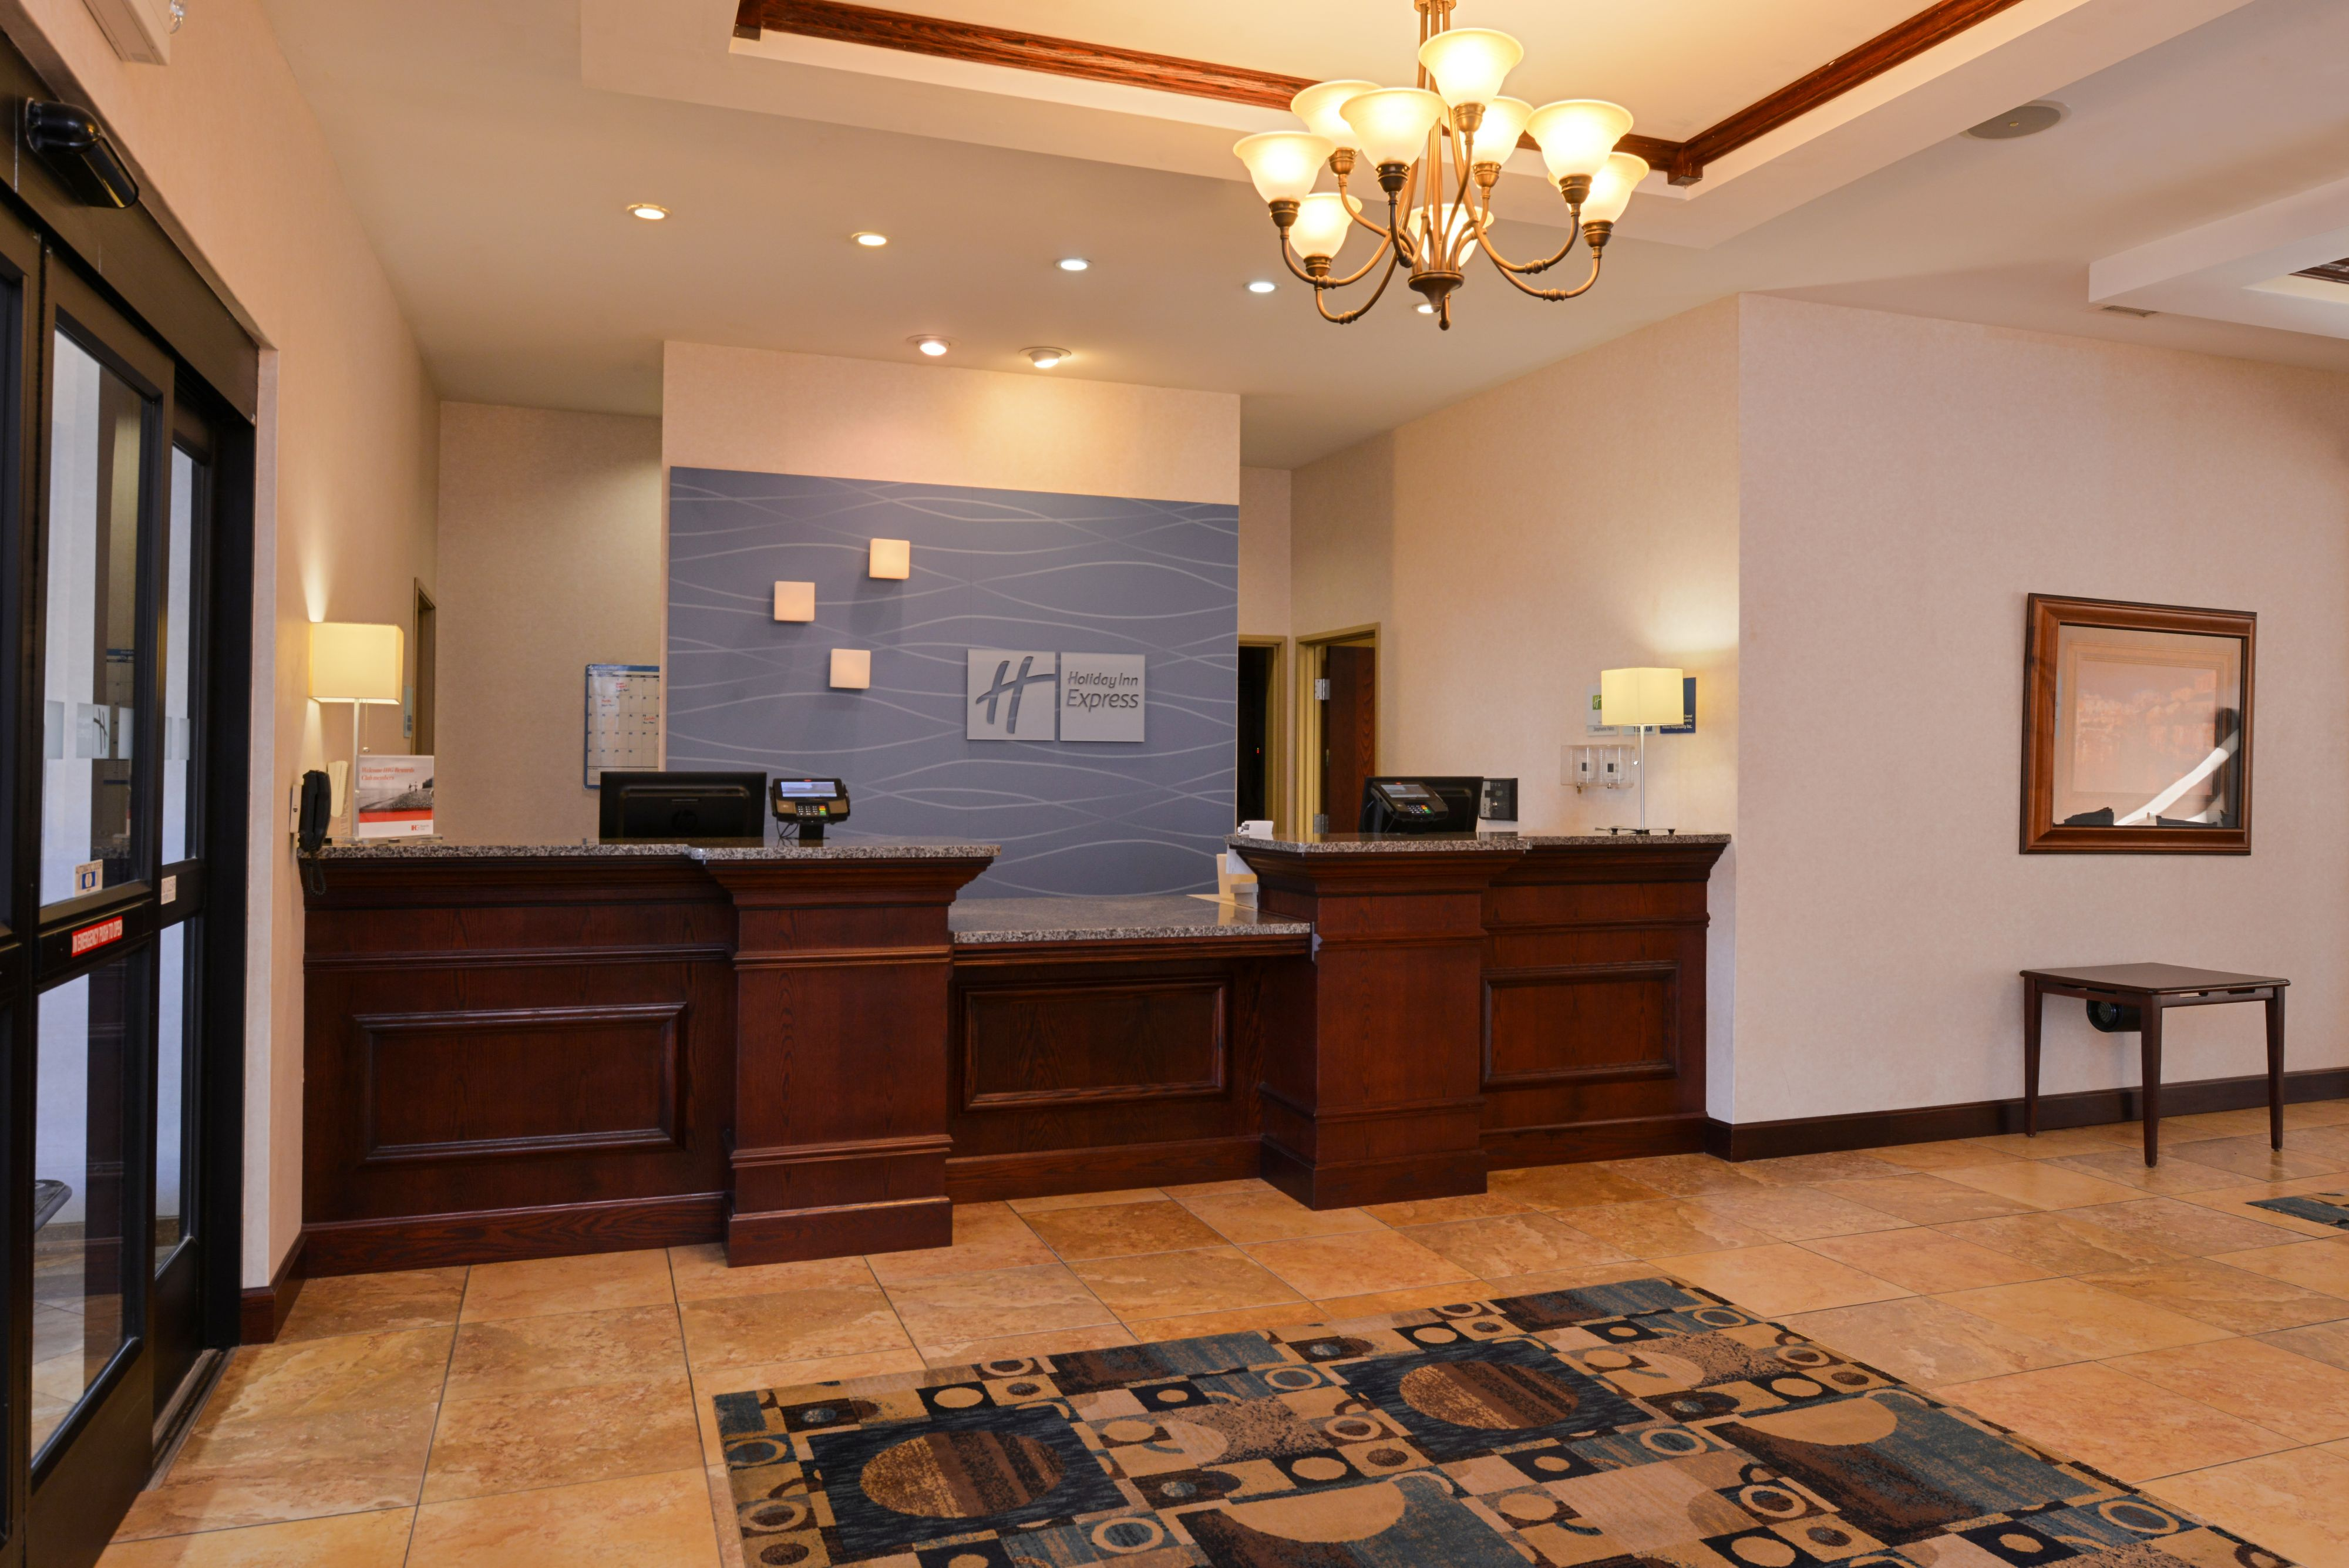 Holiday Inn Express & Suites White Haven - Poconos image 6